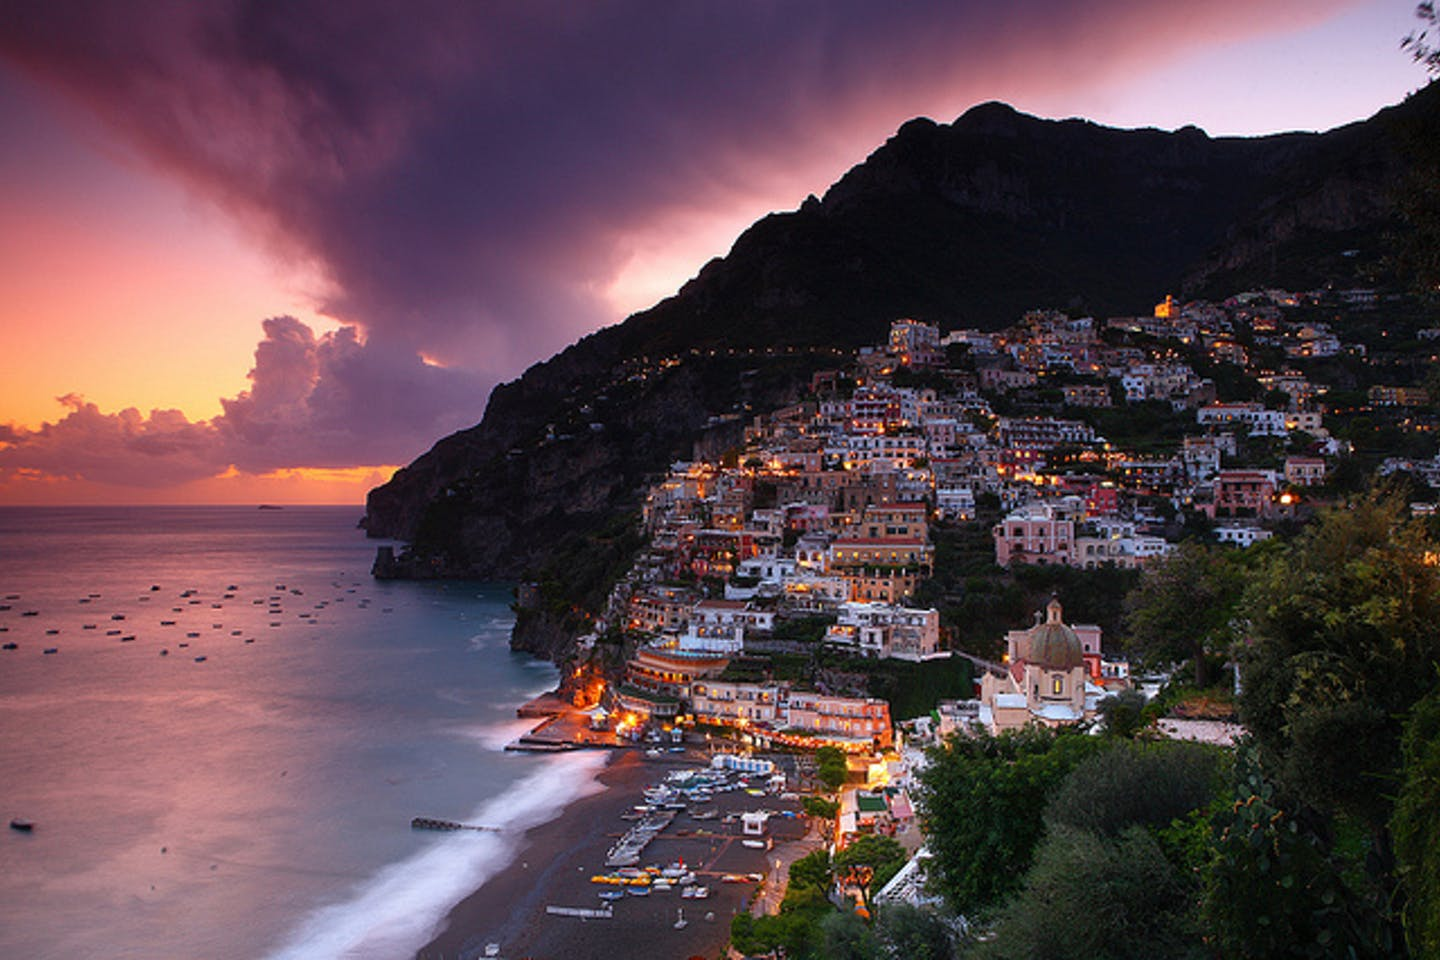 Positano Amalfi Coast, Italy, at dusk